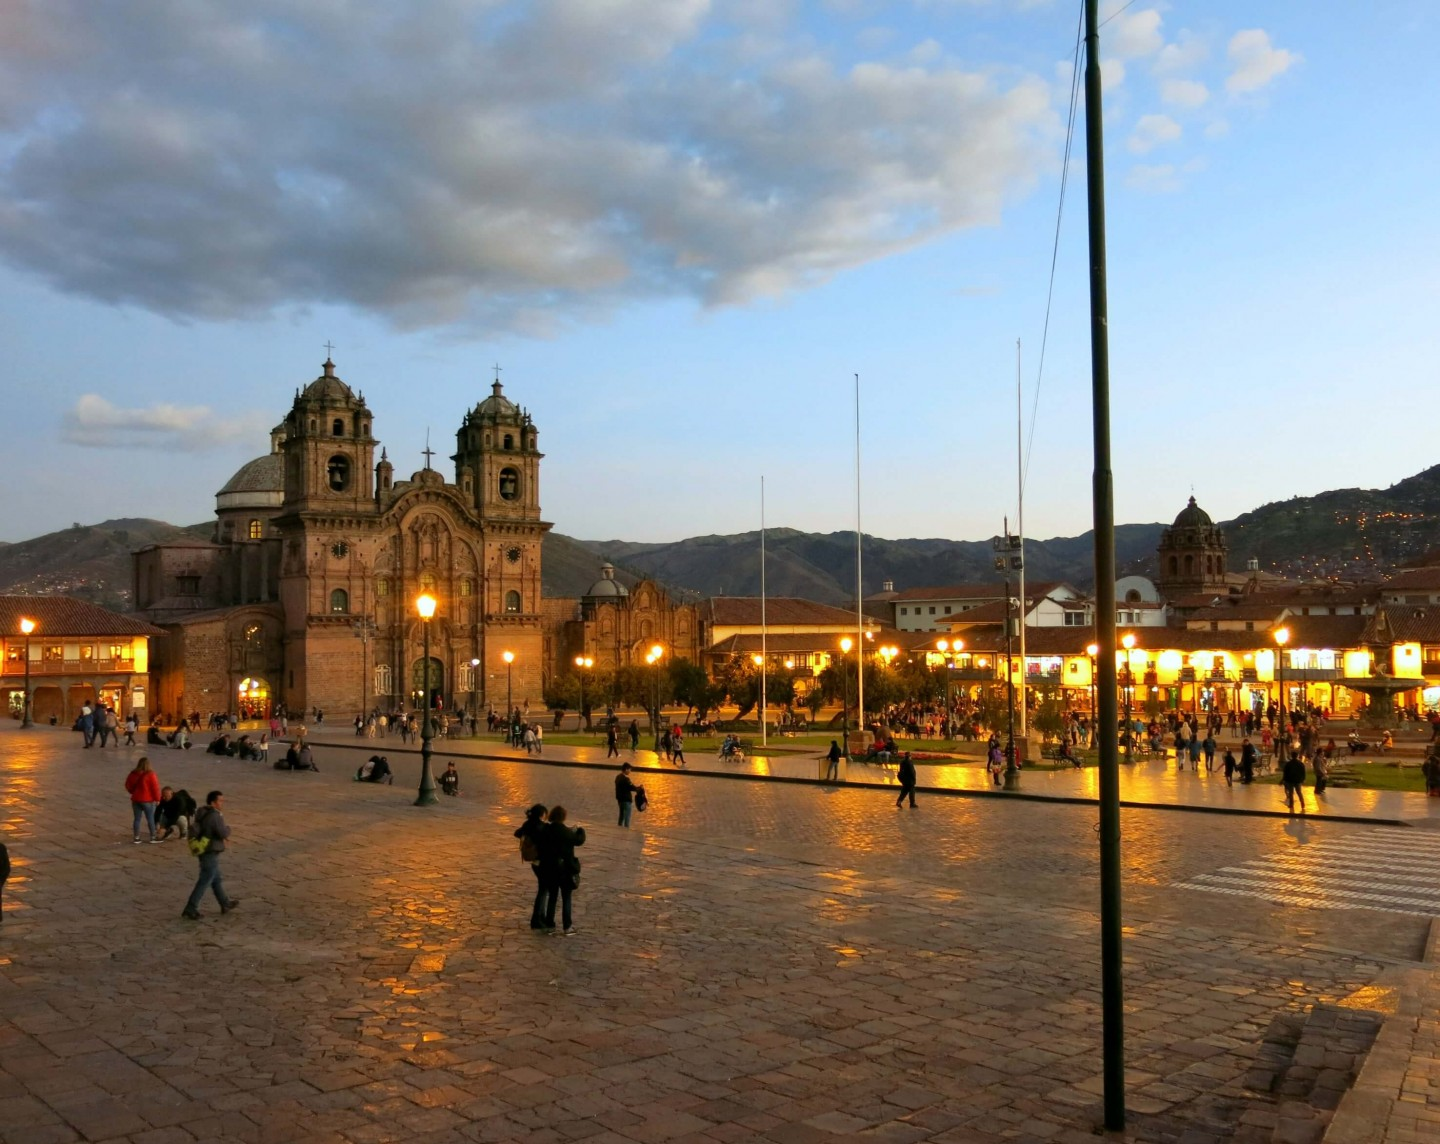 The main square in Cusco at Night. We loved this beautiful city in Peru!